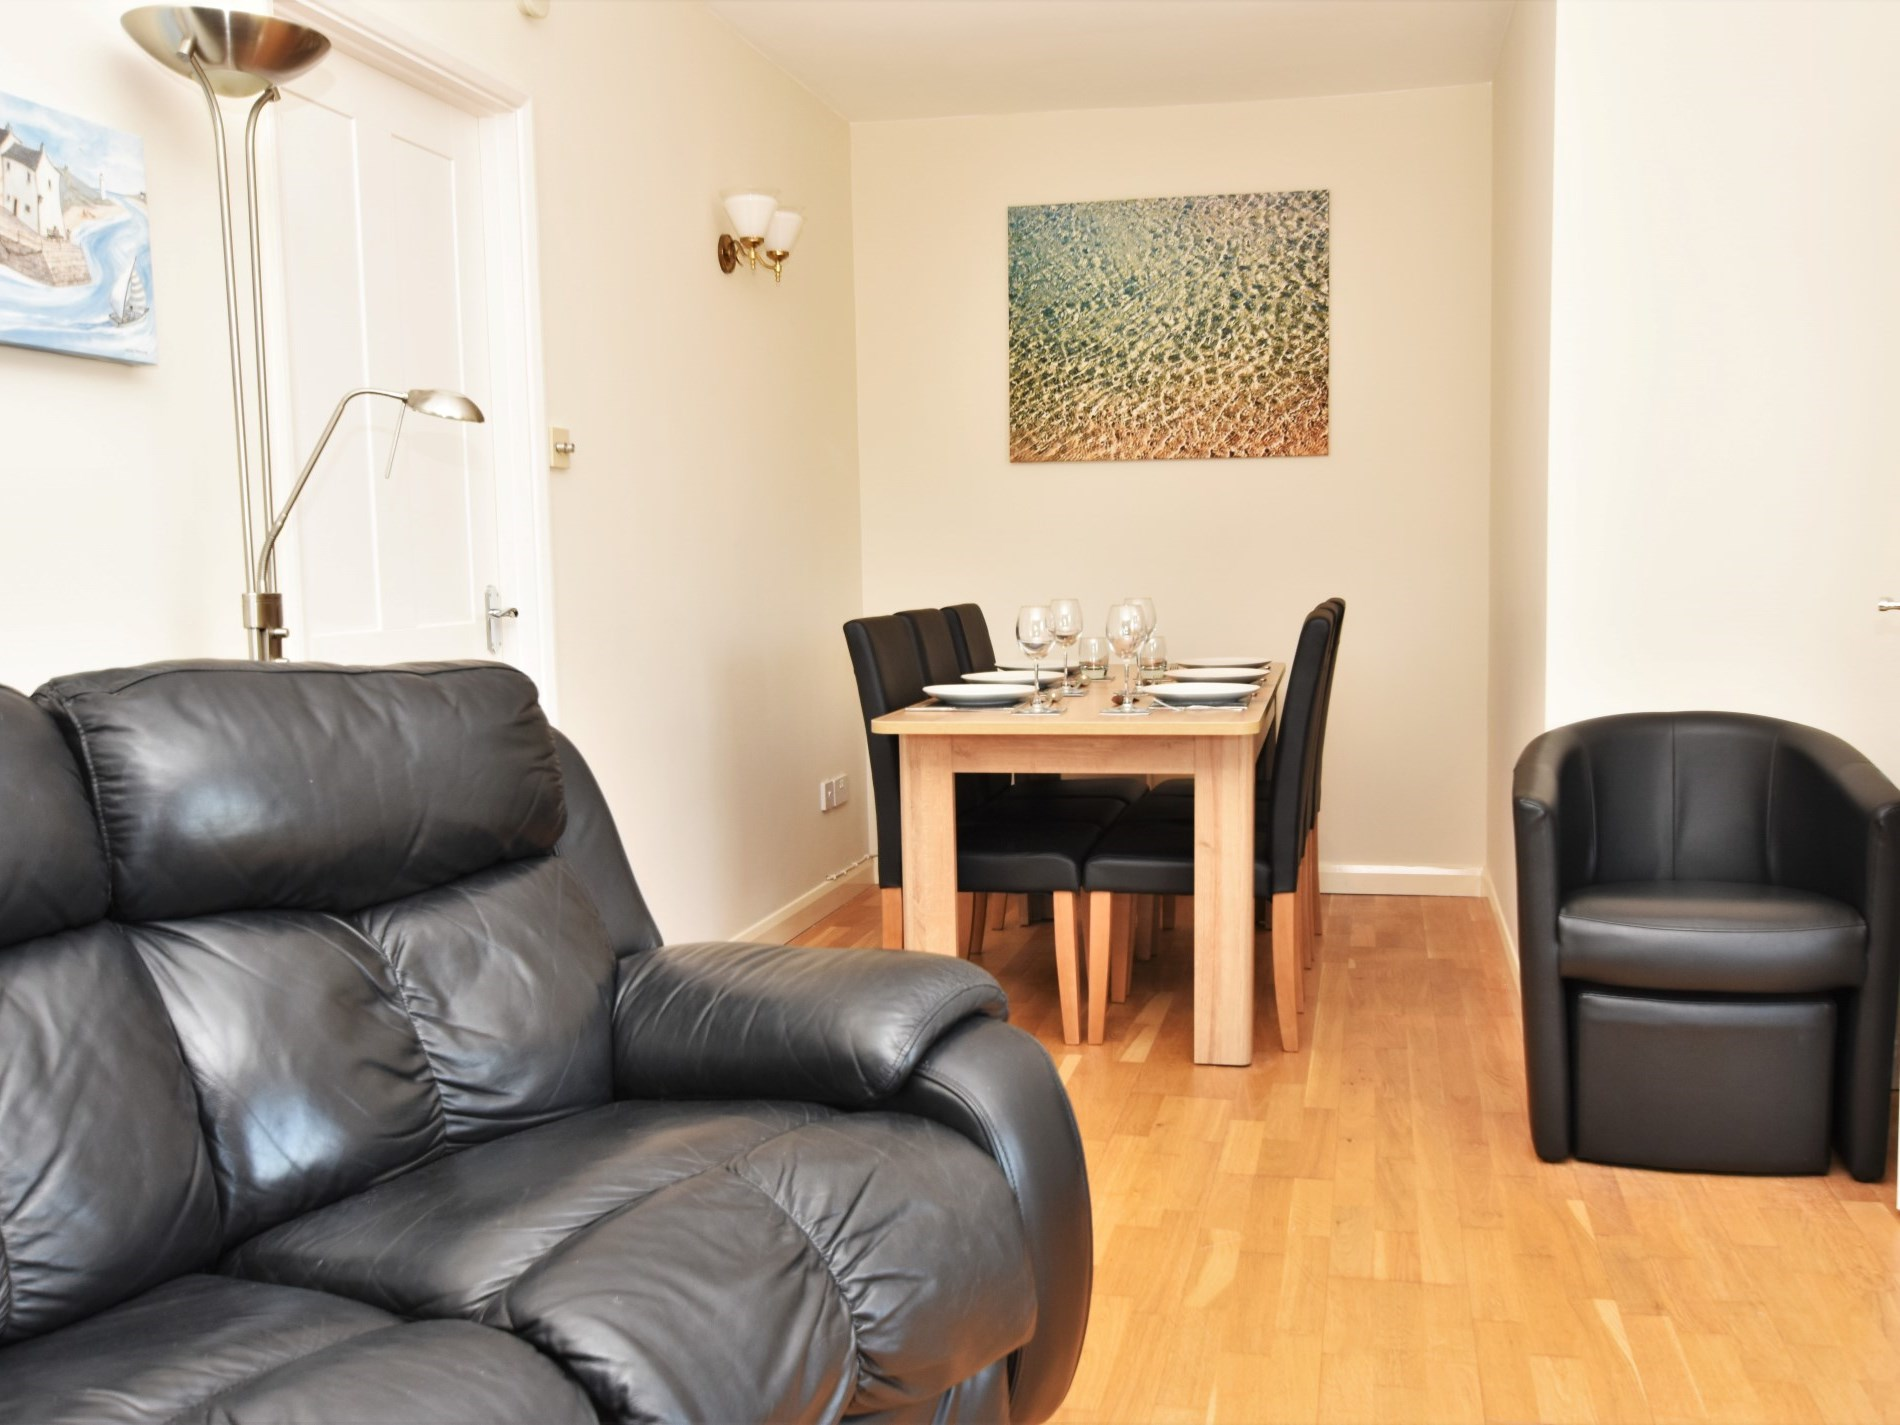 2 Bedroom Apartment in South Cornwall, Cornwall